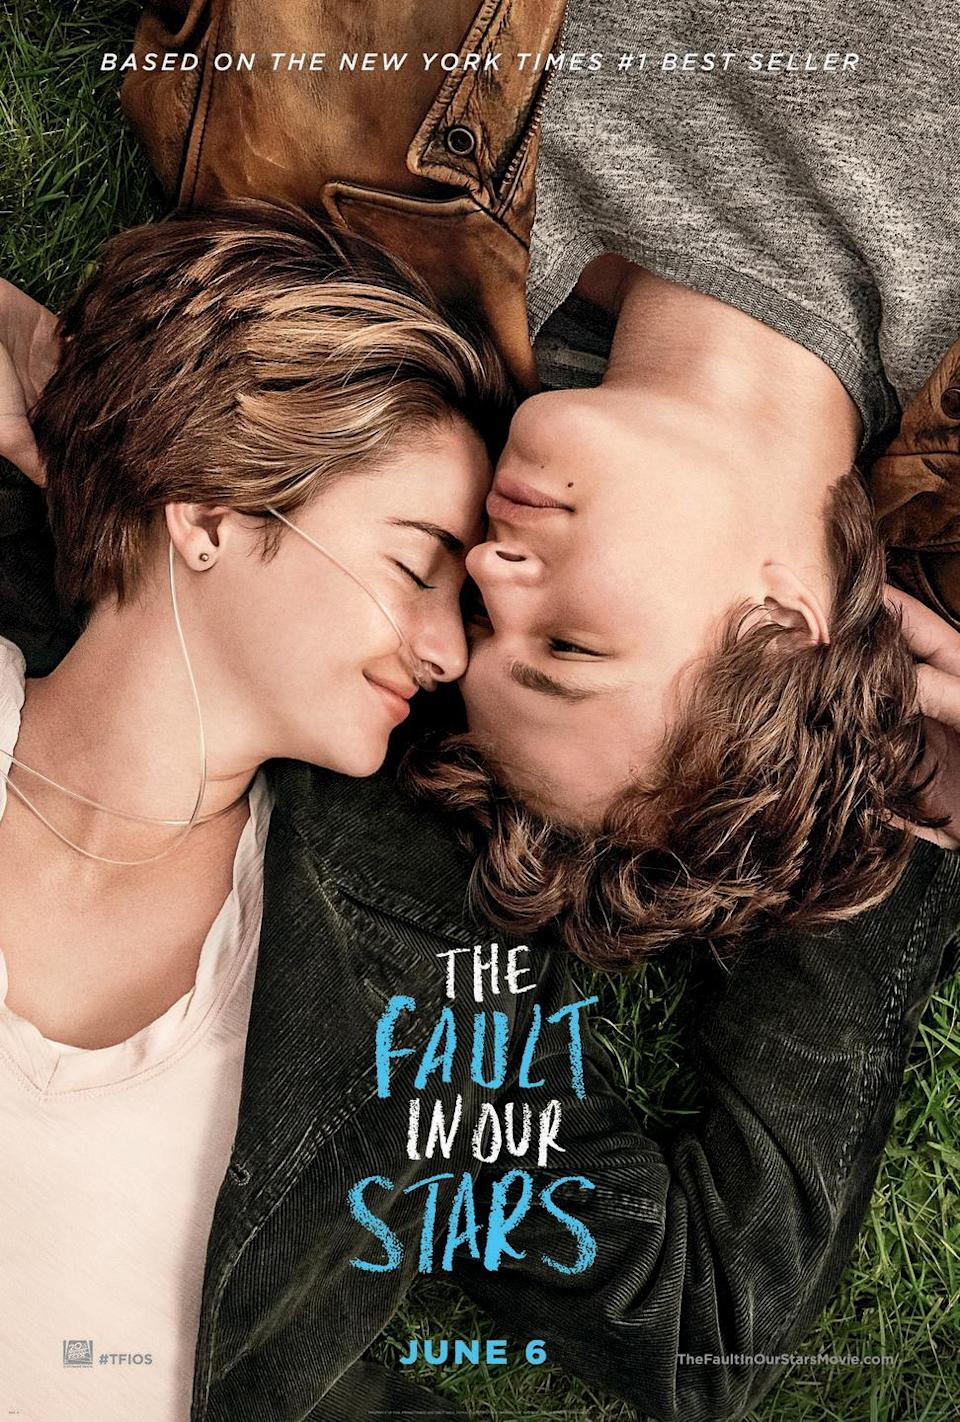 "<p>""My love, I cannot tell you how thankful I am for our little infinity. I wouldn't trade it for the world. You gave me a forever within the numbered days, and I'm grateful.""<em><br><br>—The Fault In Our Stars </em>(2014)</p>"